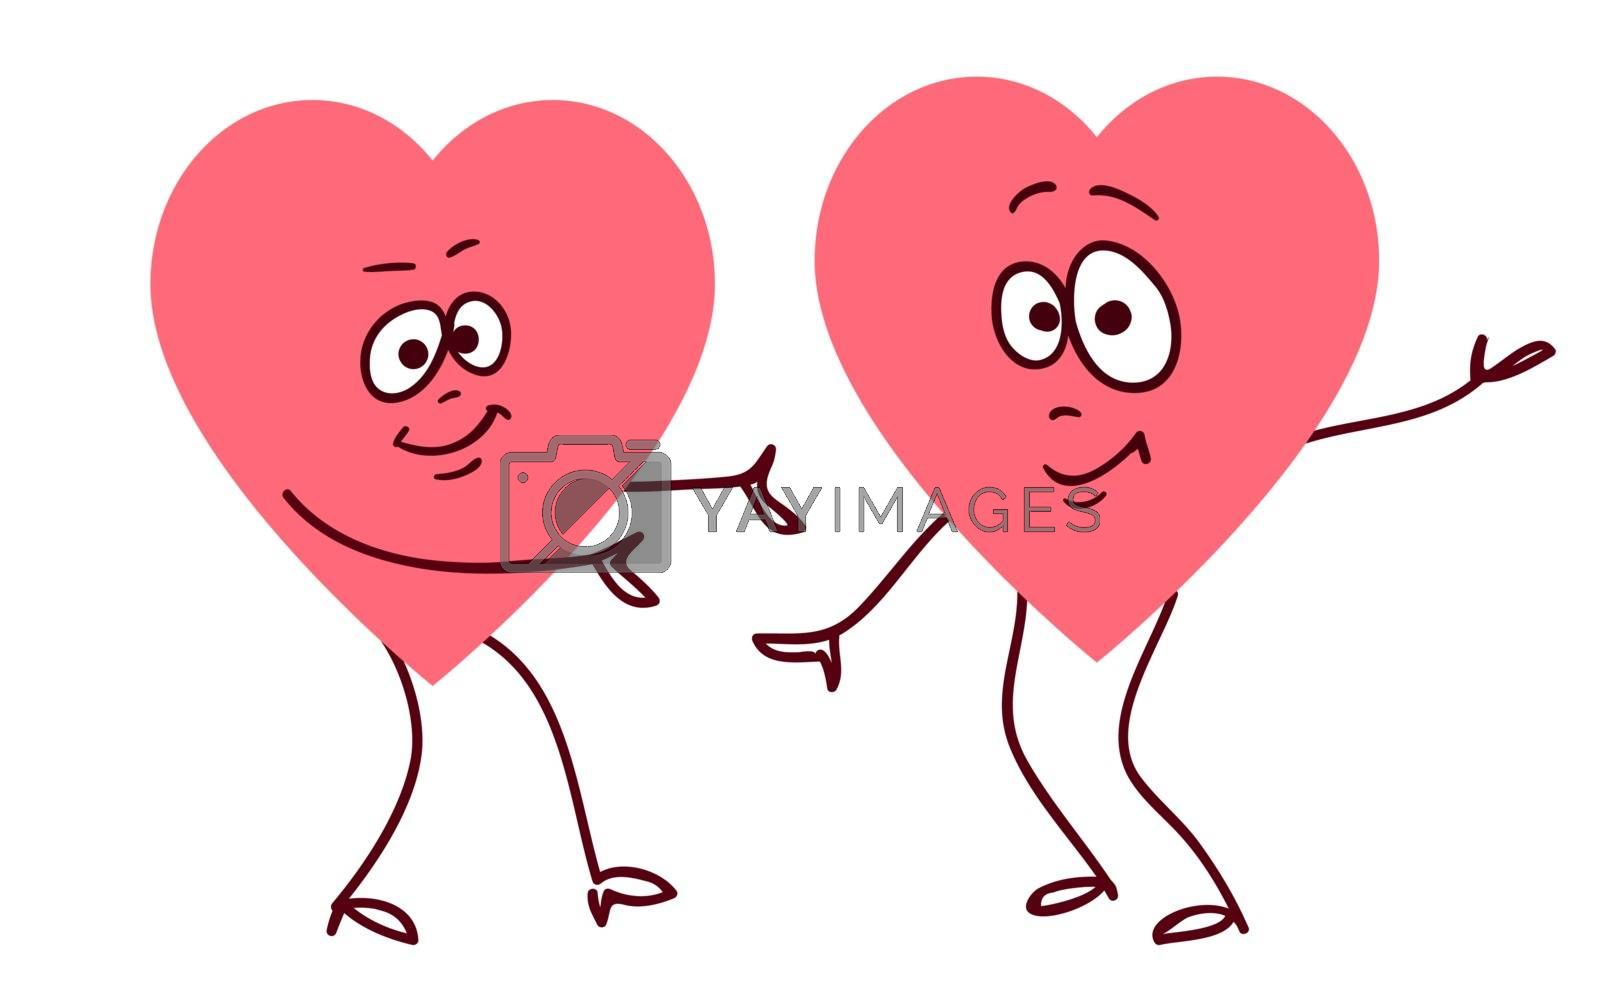 Pair of dancing hearts. Concept of friendship love support and help. Love or helth symbol. Don't be afraid i am with you.